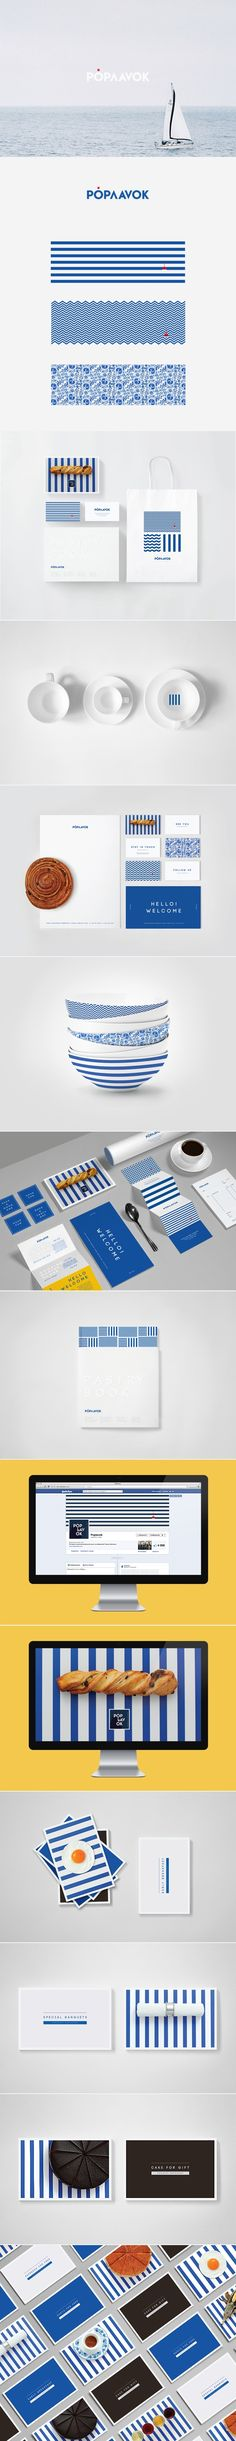 Poplavok (Russian restaurant on the water) | Ira Sm. Beautiful blue #identity  | #stationary #corporate #design #corporatedesign #identity